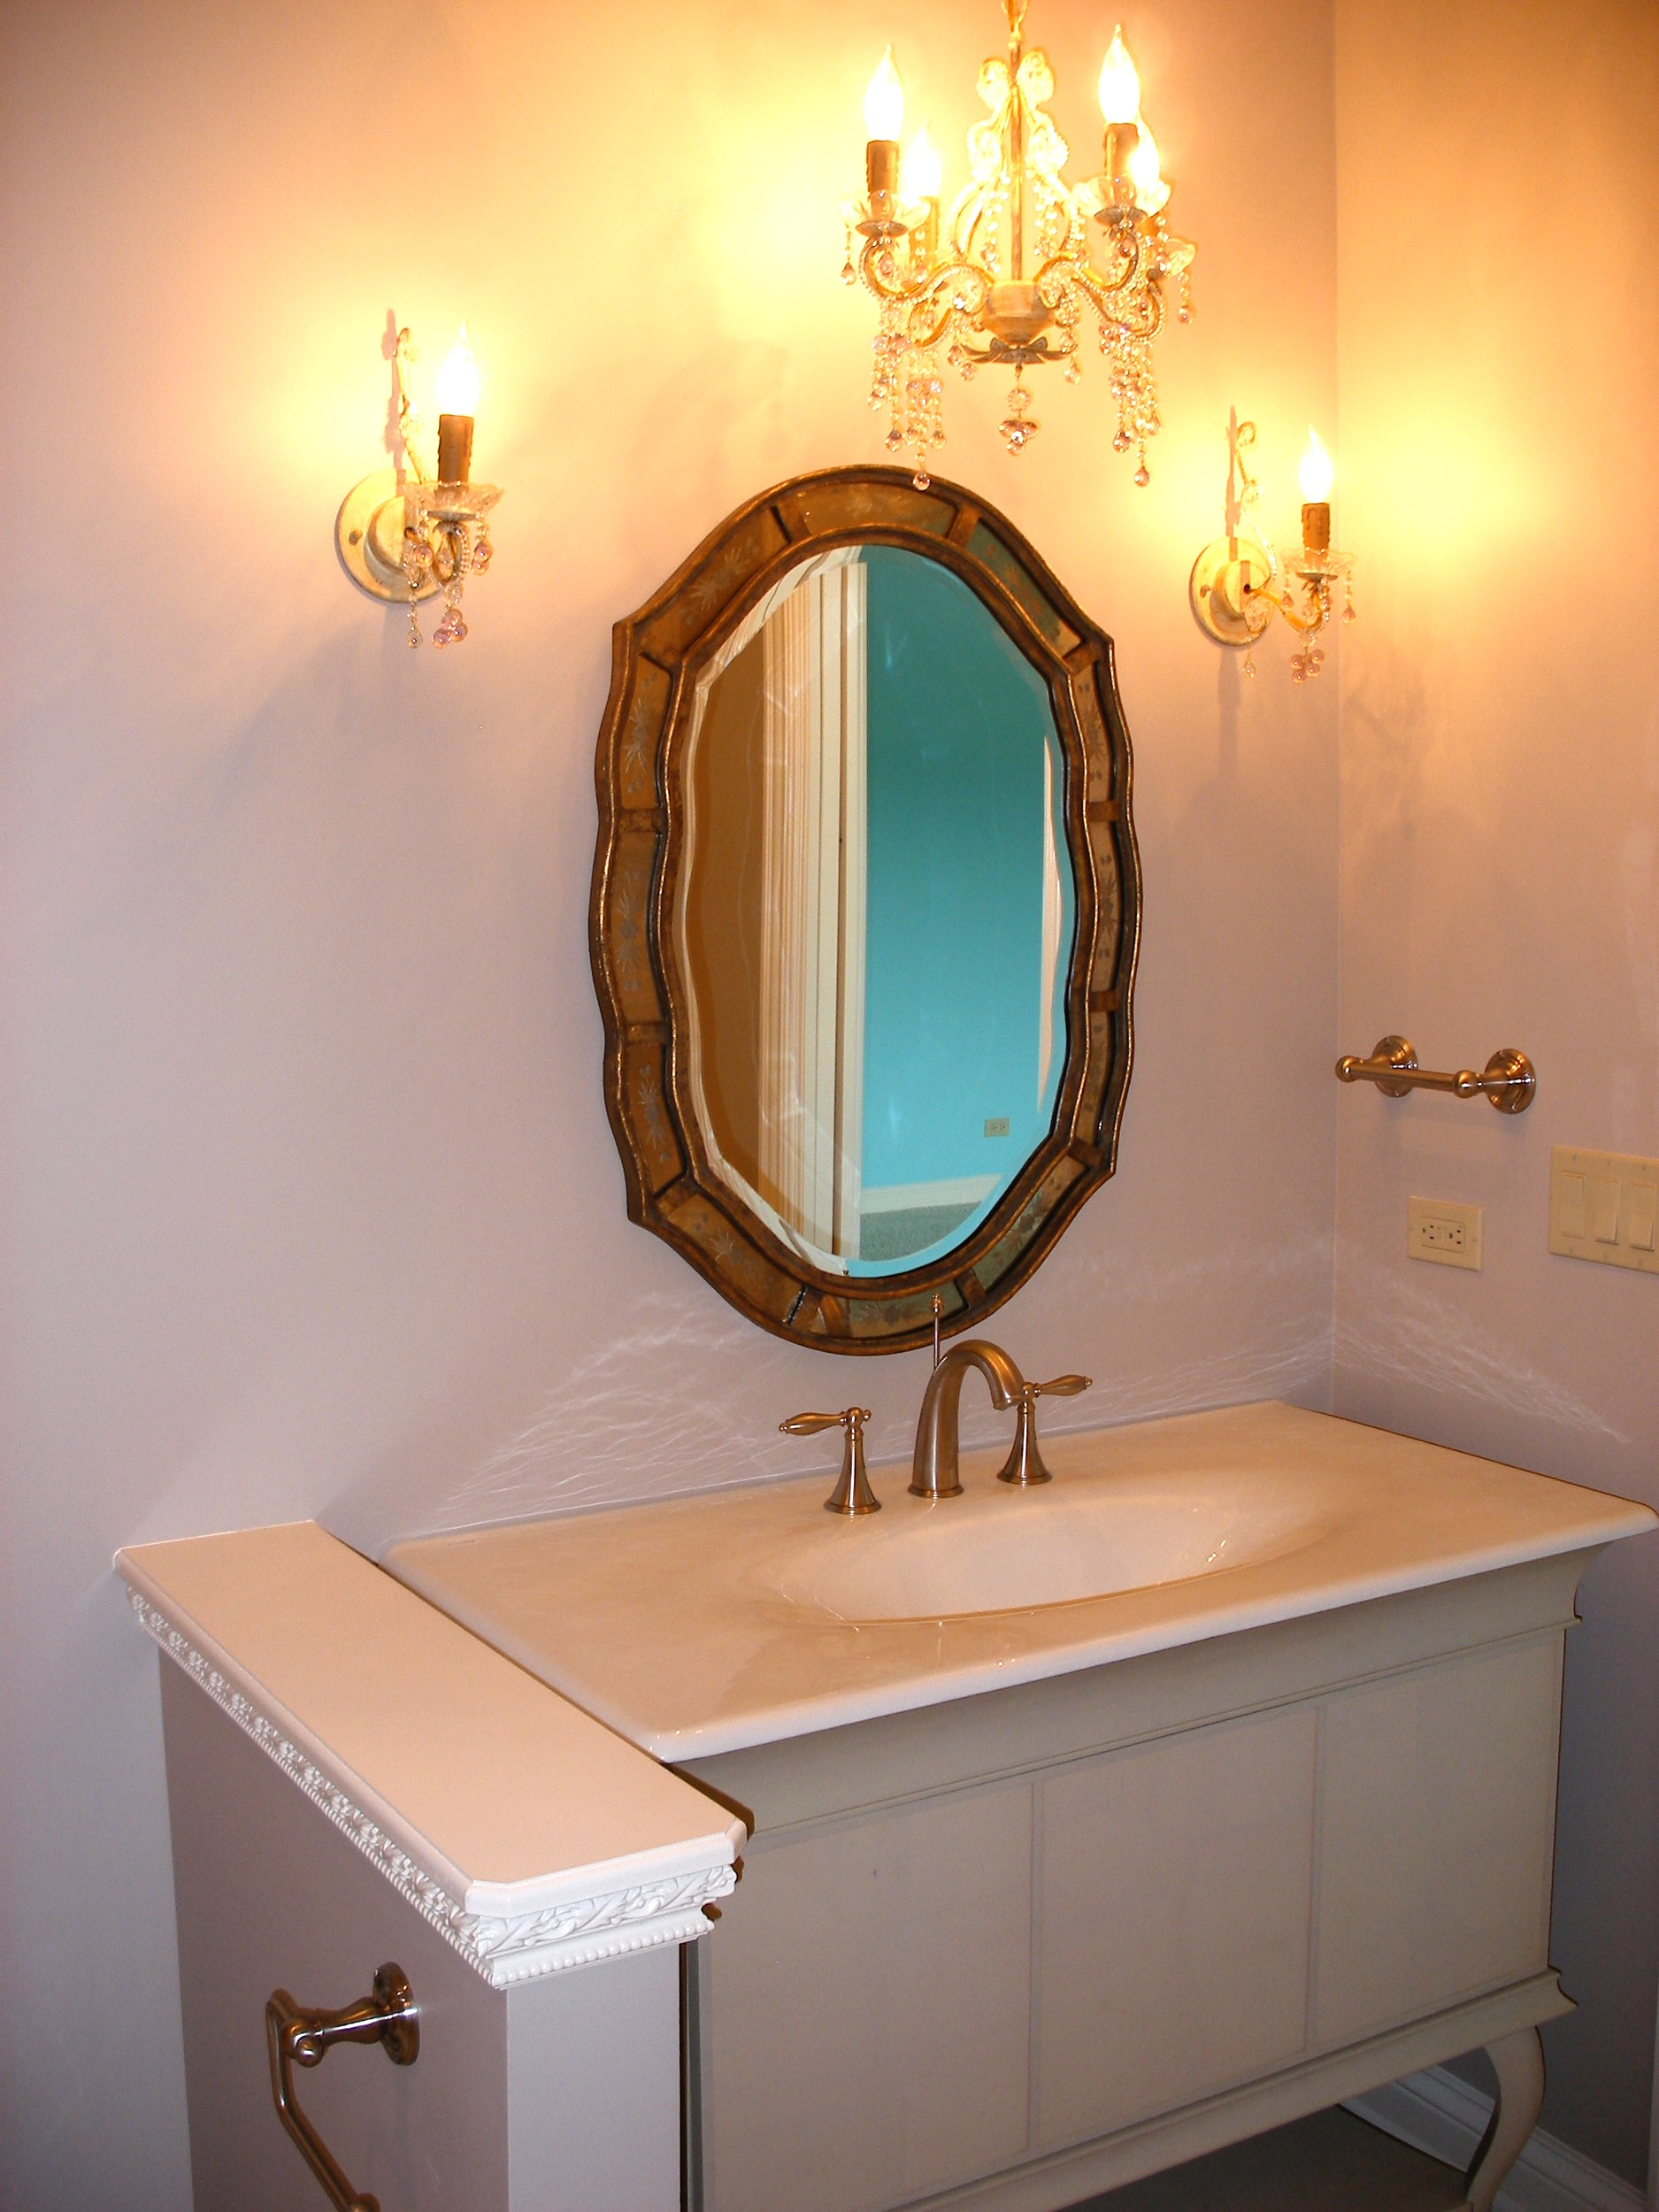 SCONCES ON SIDES OF MIRROR IN ST. CHARLES IL BATH REMODEL